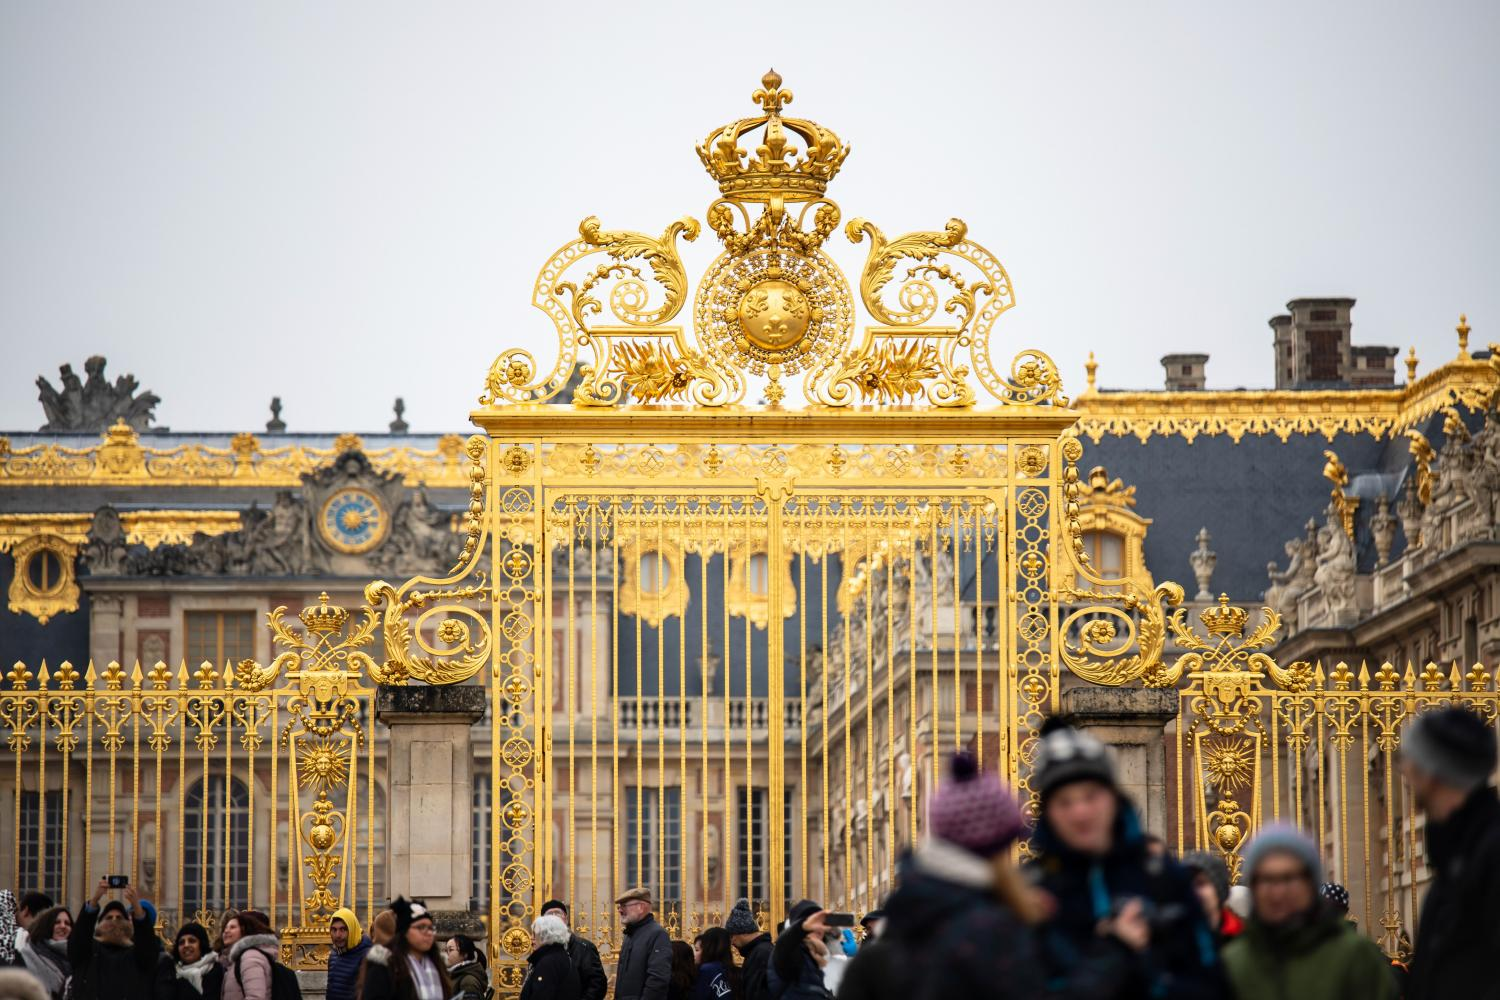 Experience the extravagance of Versailles